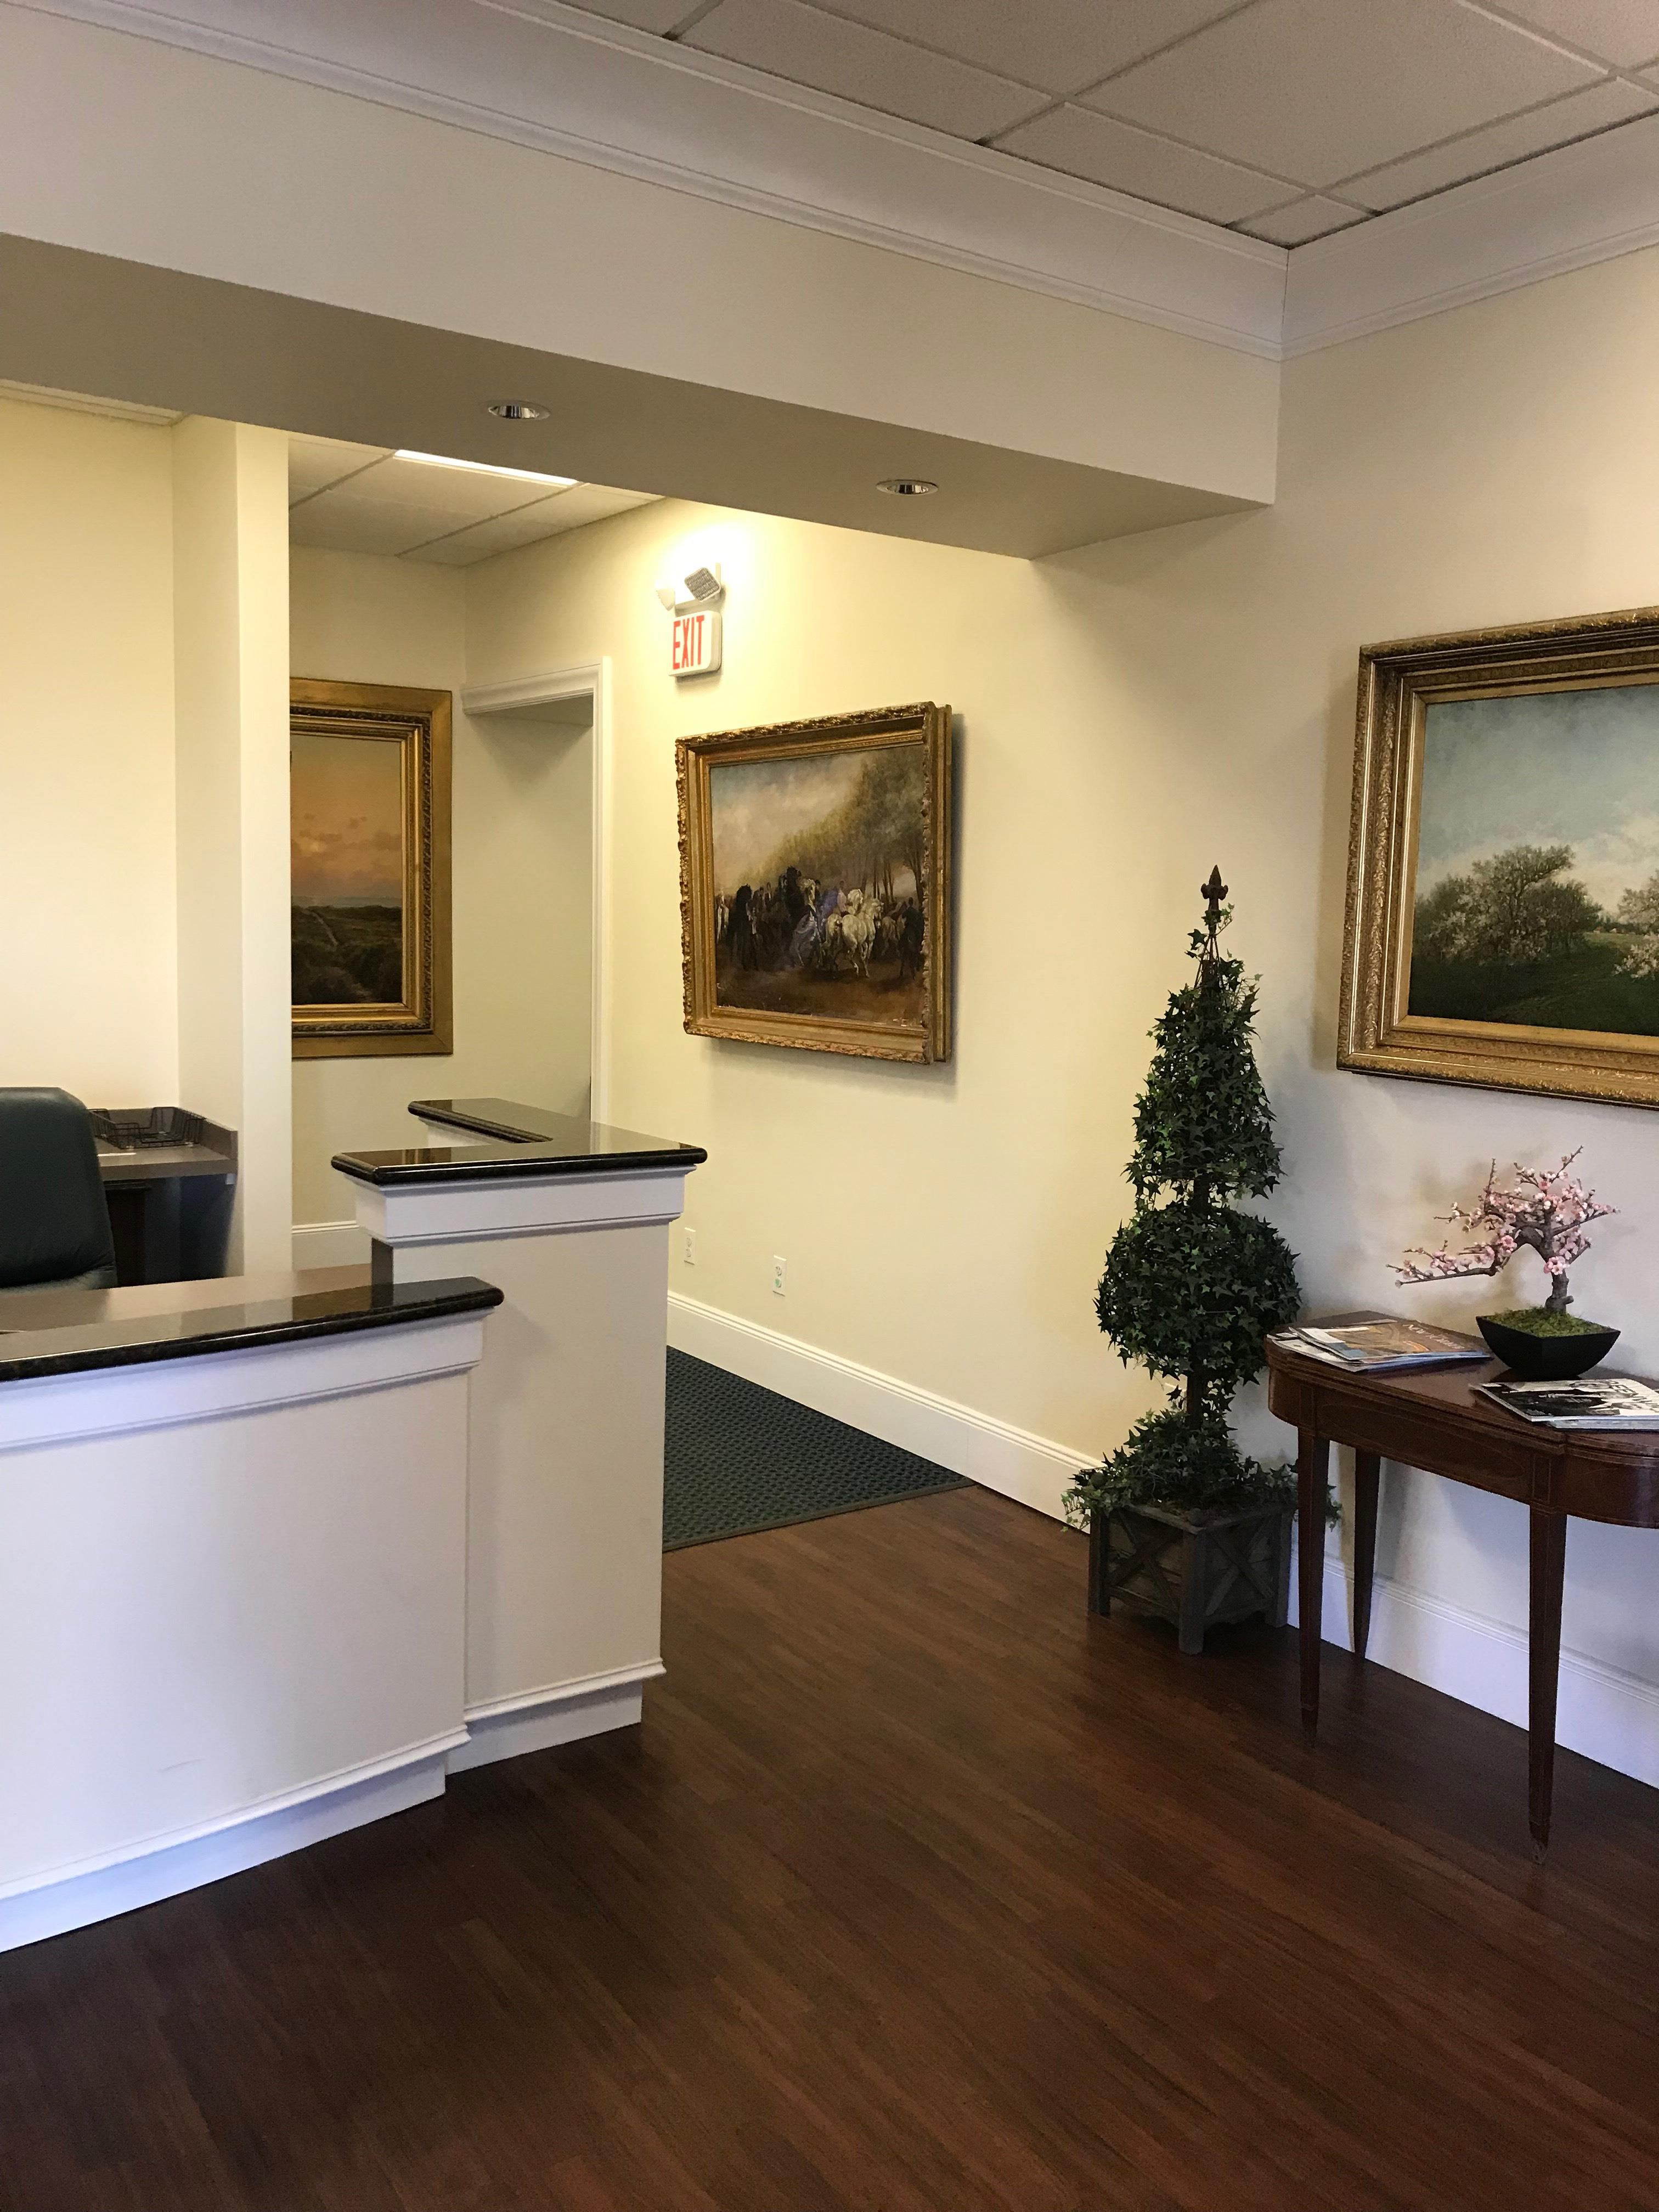 Putnam Avenue Offices - Private Offices